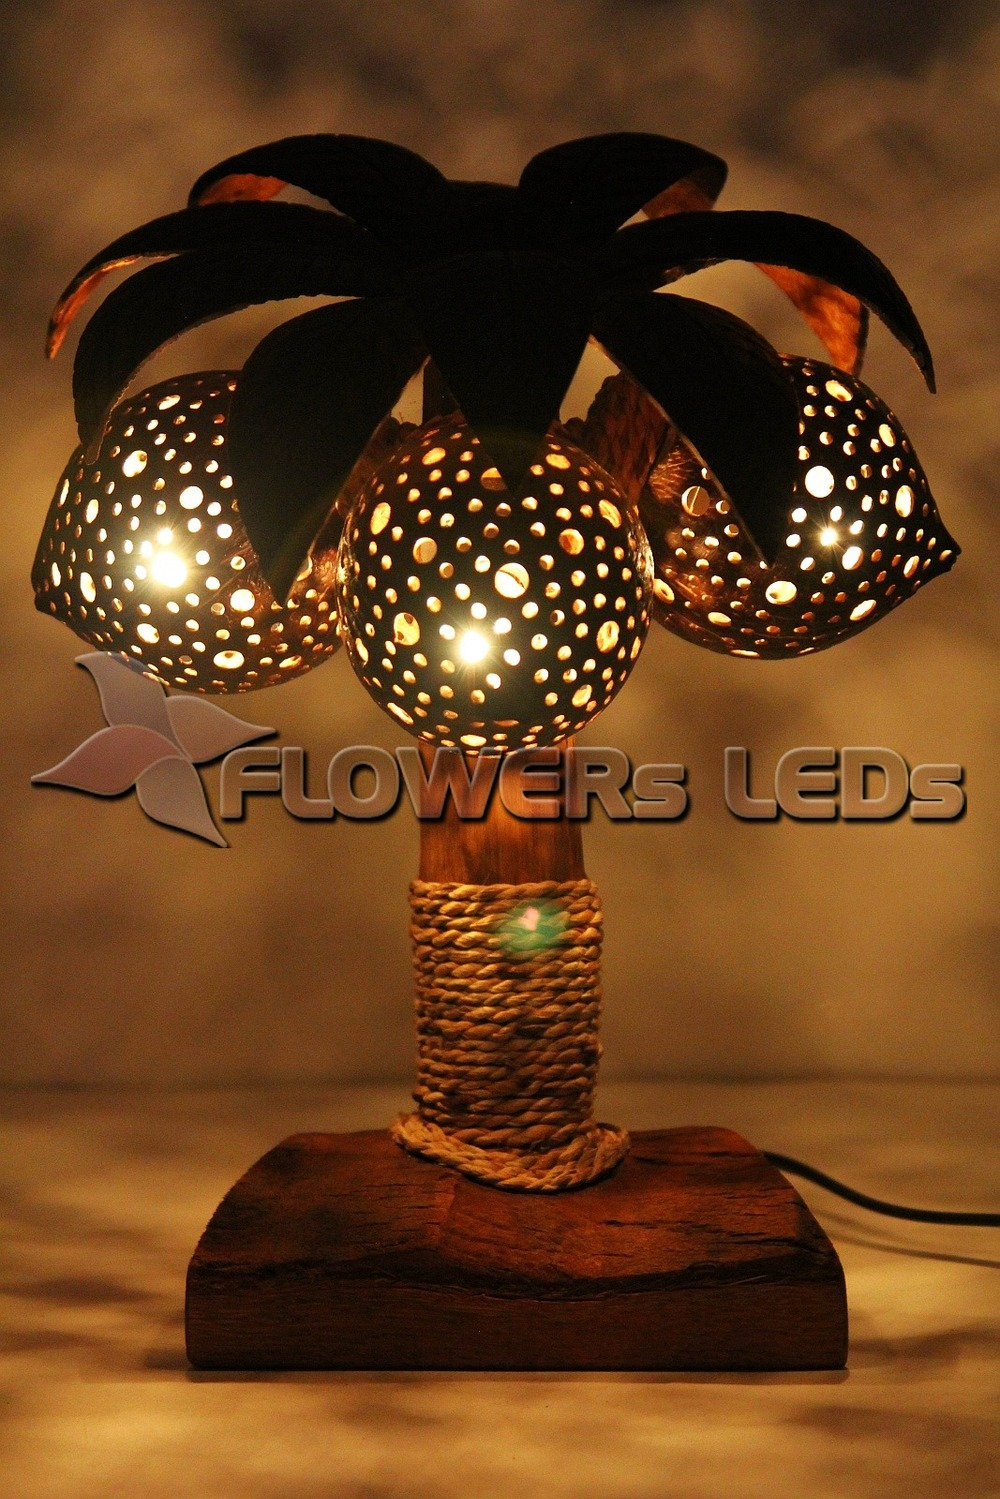 Lamps with night light - Coconut Shell Lamp Lighting Night Lights Lamps For Home Decor Trees